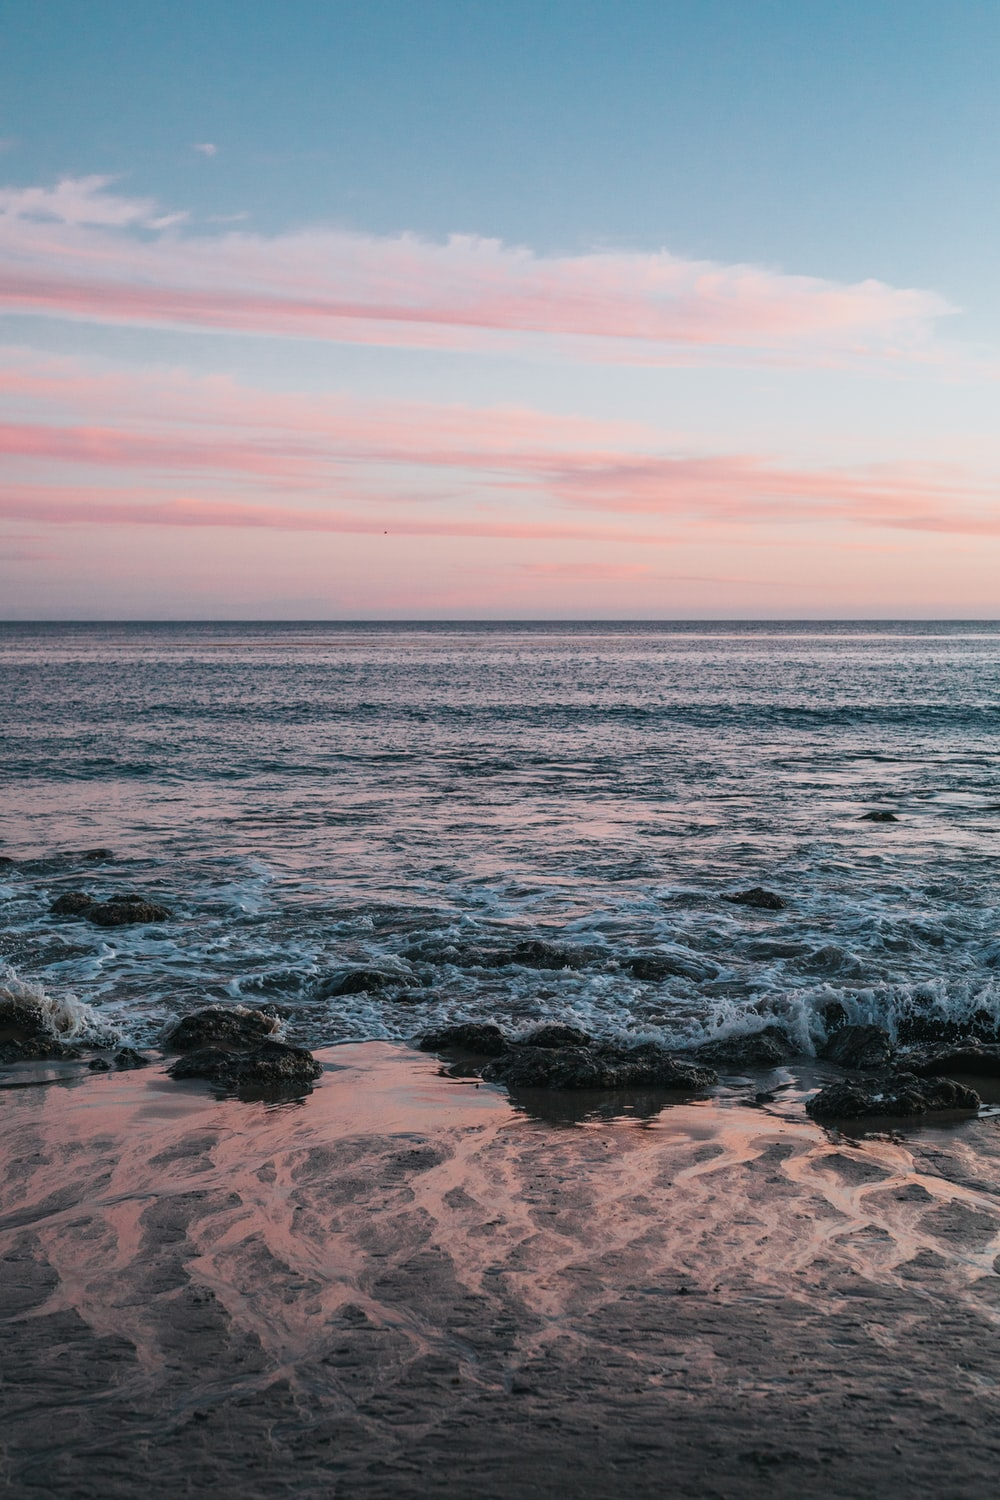 body of water with pink sky